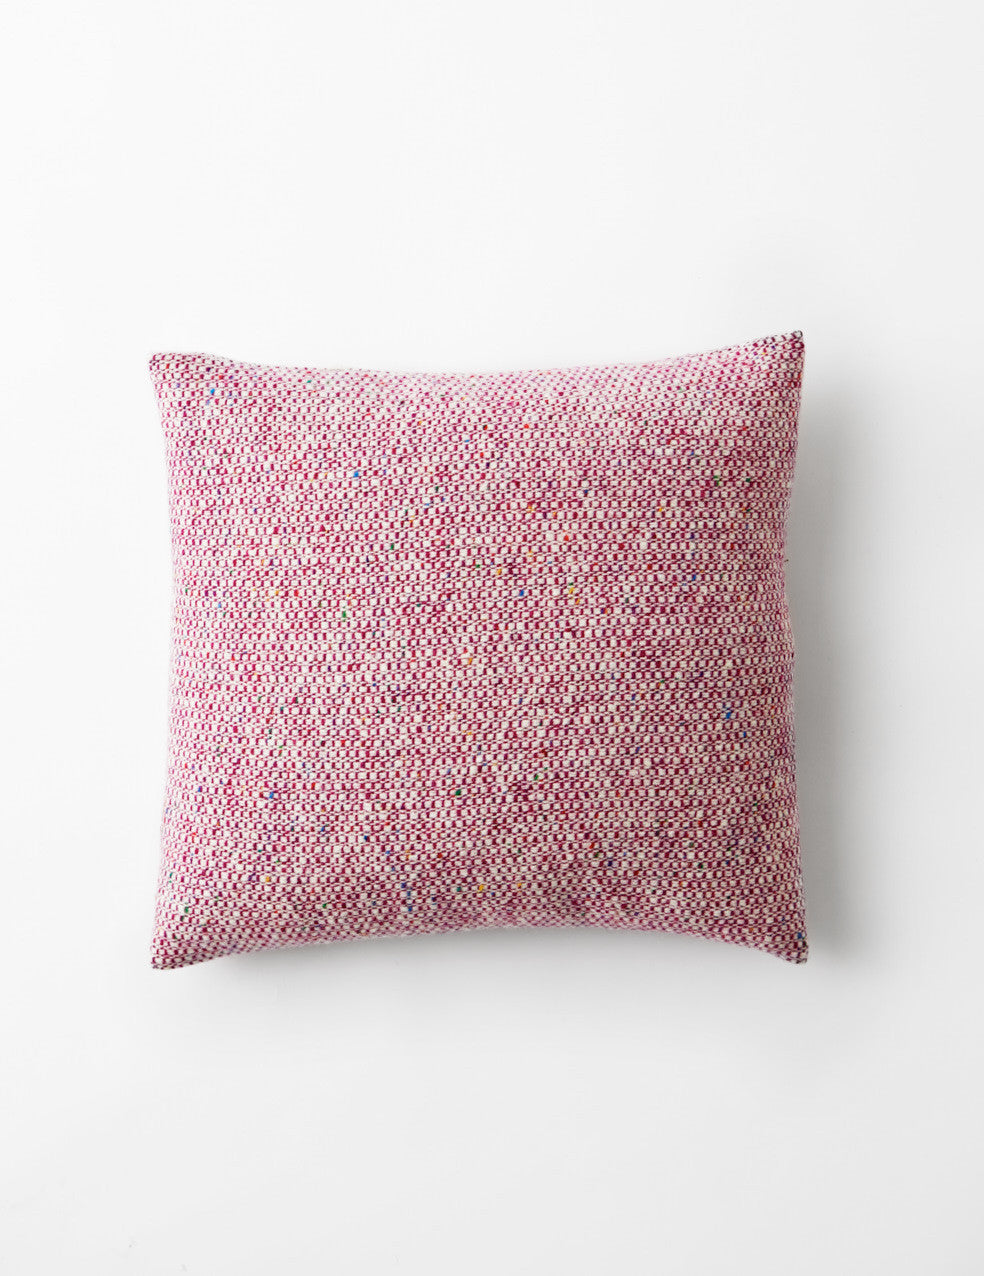 Childrens Cushion - Cherry